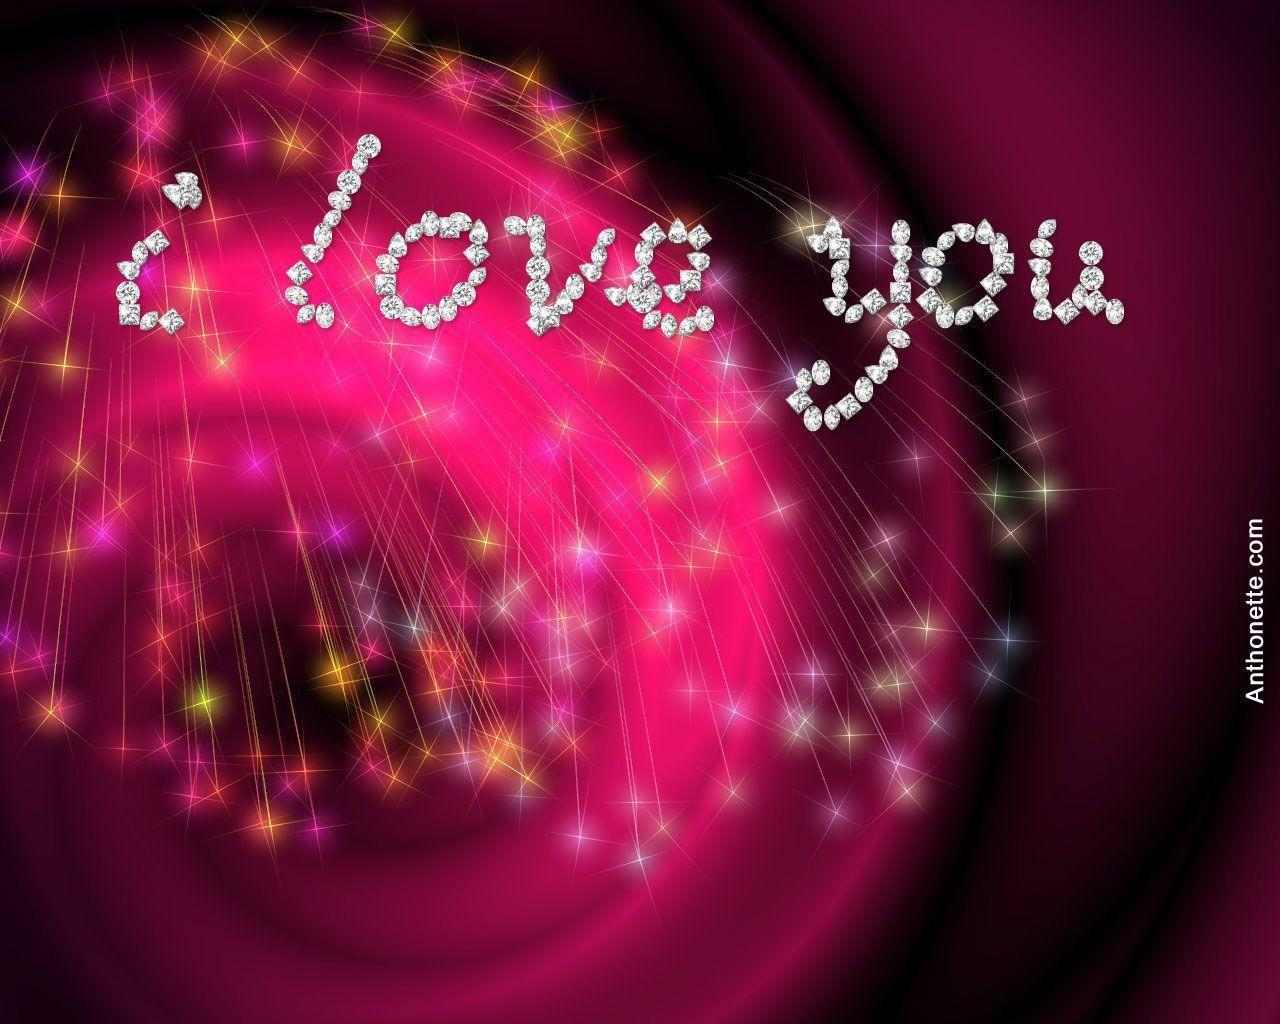 Love Wallpaper For Mobile 240x400 : I Love You Wallpapers - Wallpaper cave